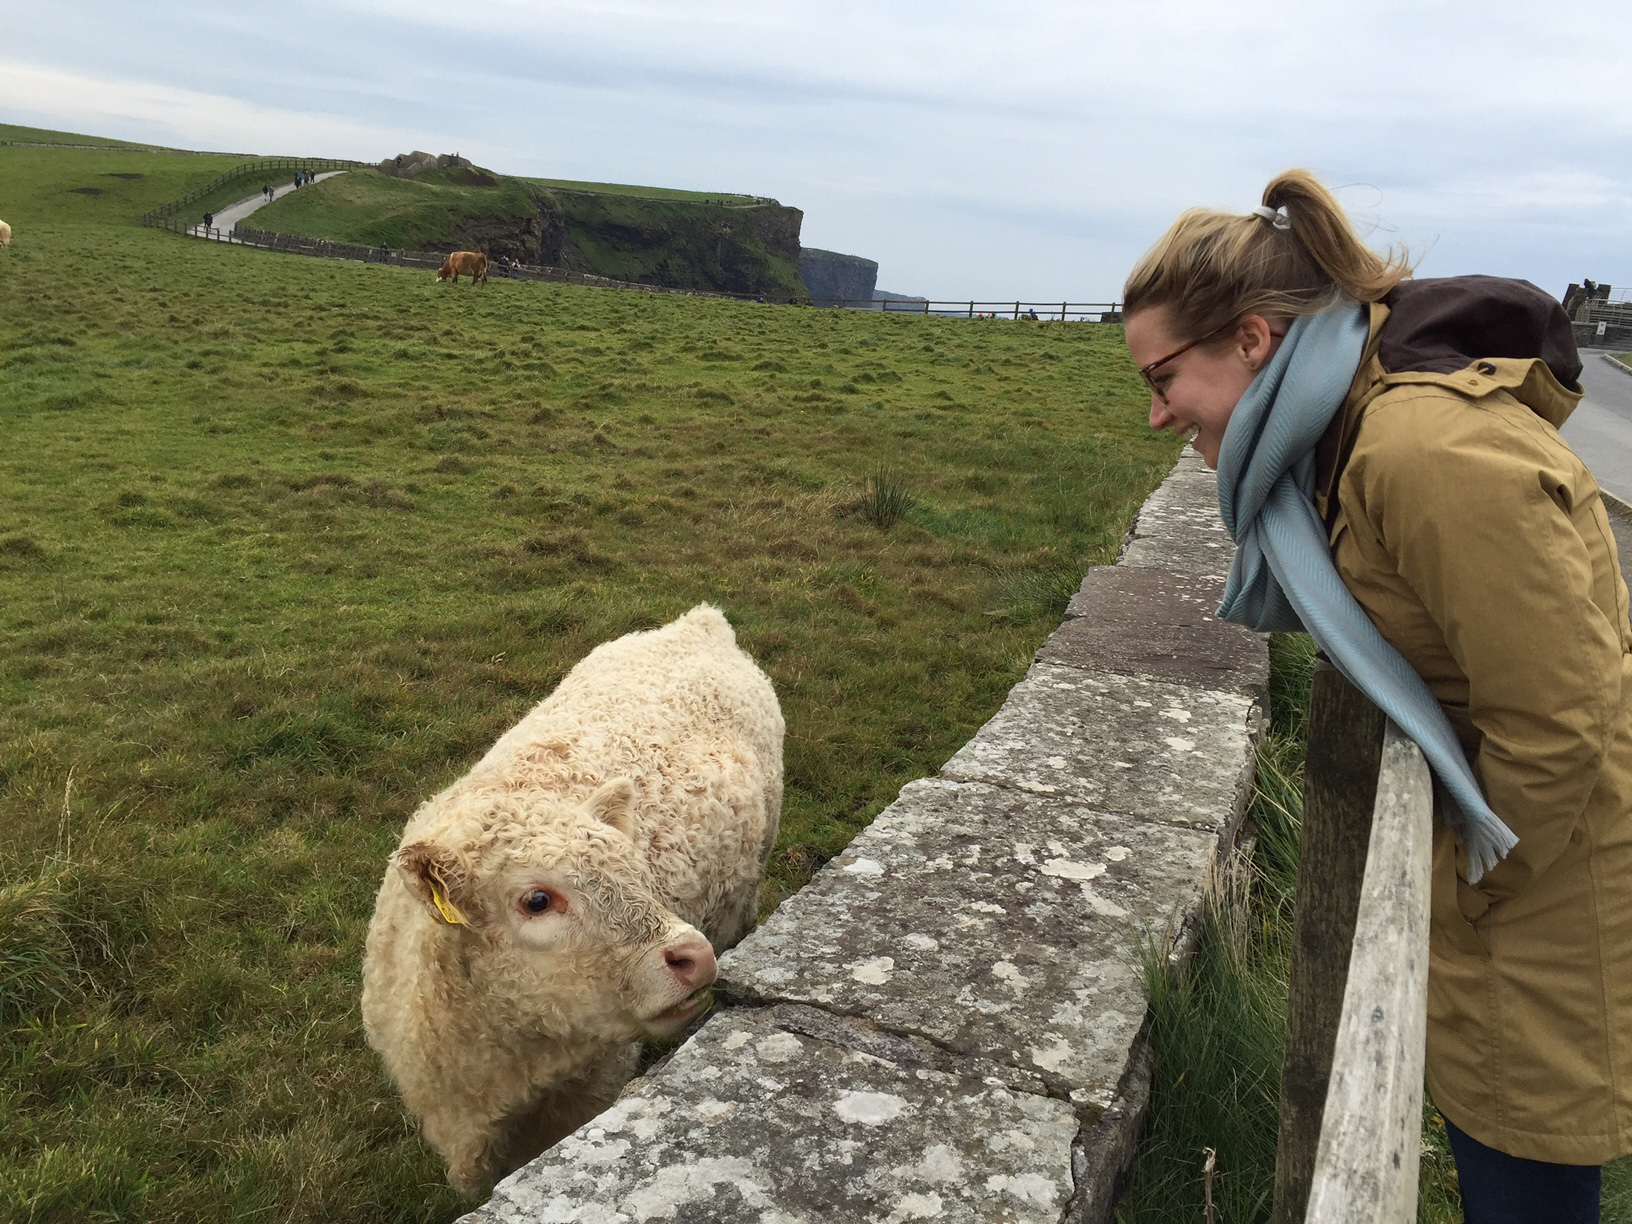 Cow-Friend_Cliffs-of-Moher_heatherbyhand.JPG